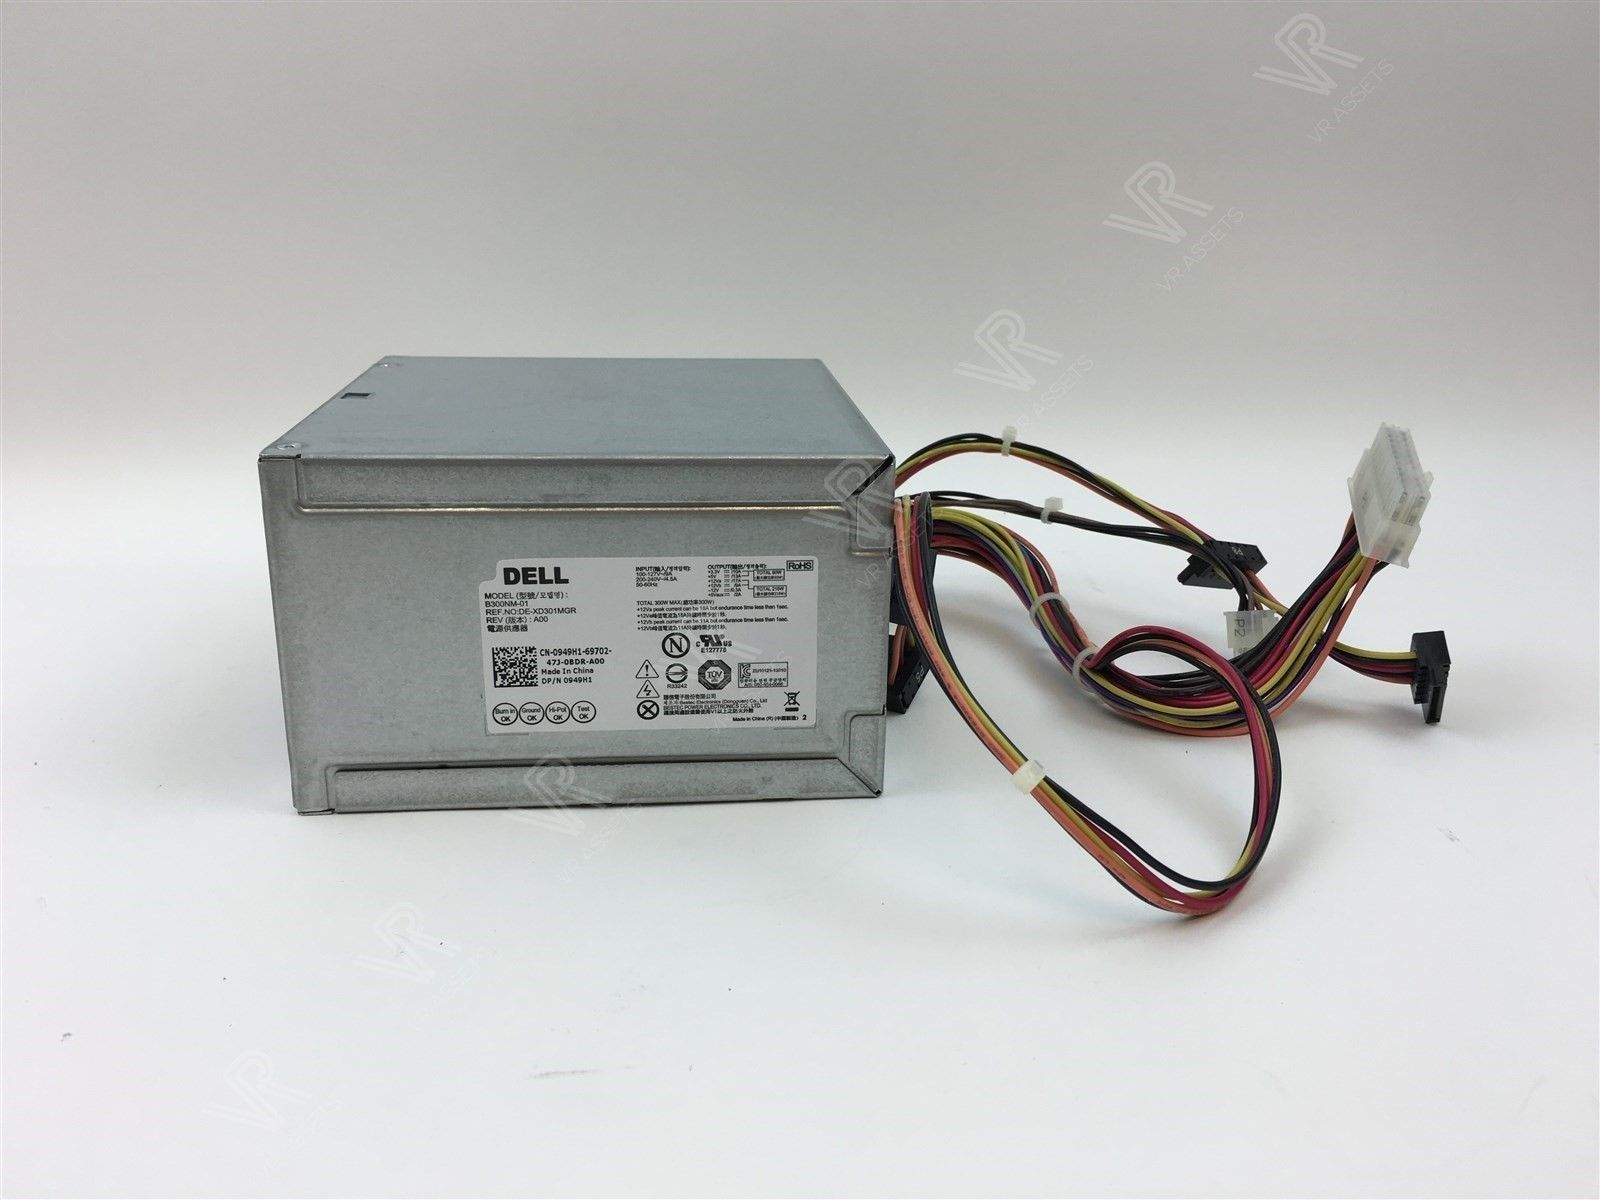 Genuine Dell Inspiron 3847 3000 Series 300W PSU Power Supply 949H1 0949H1